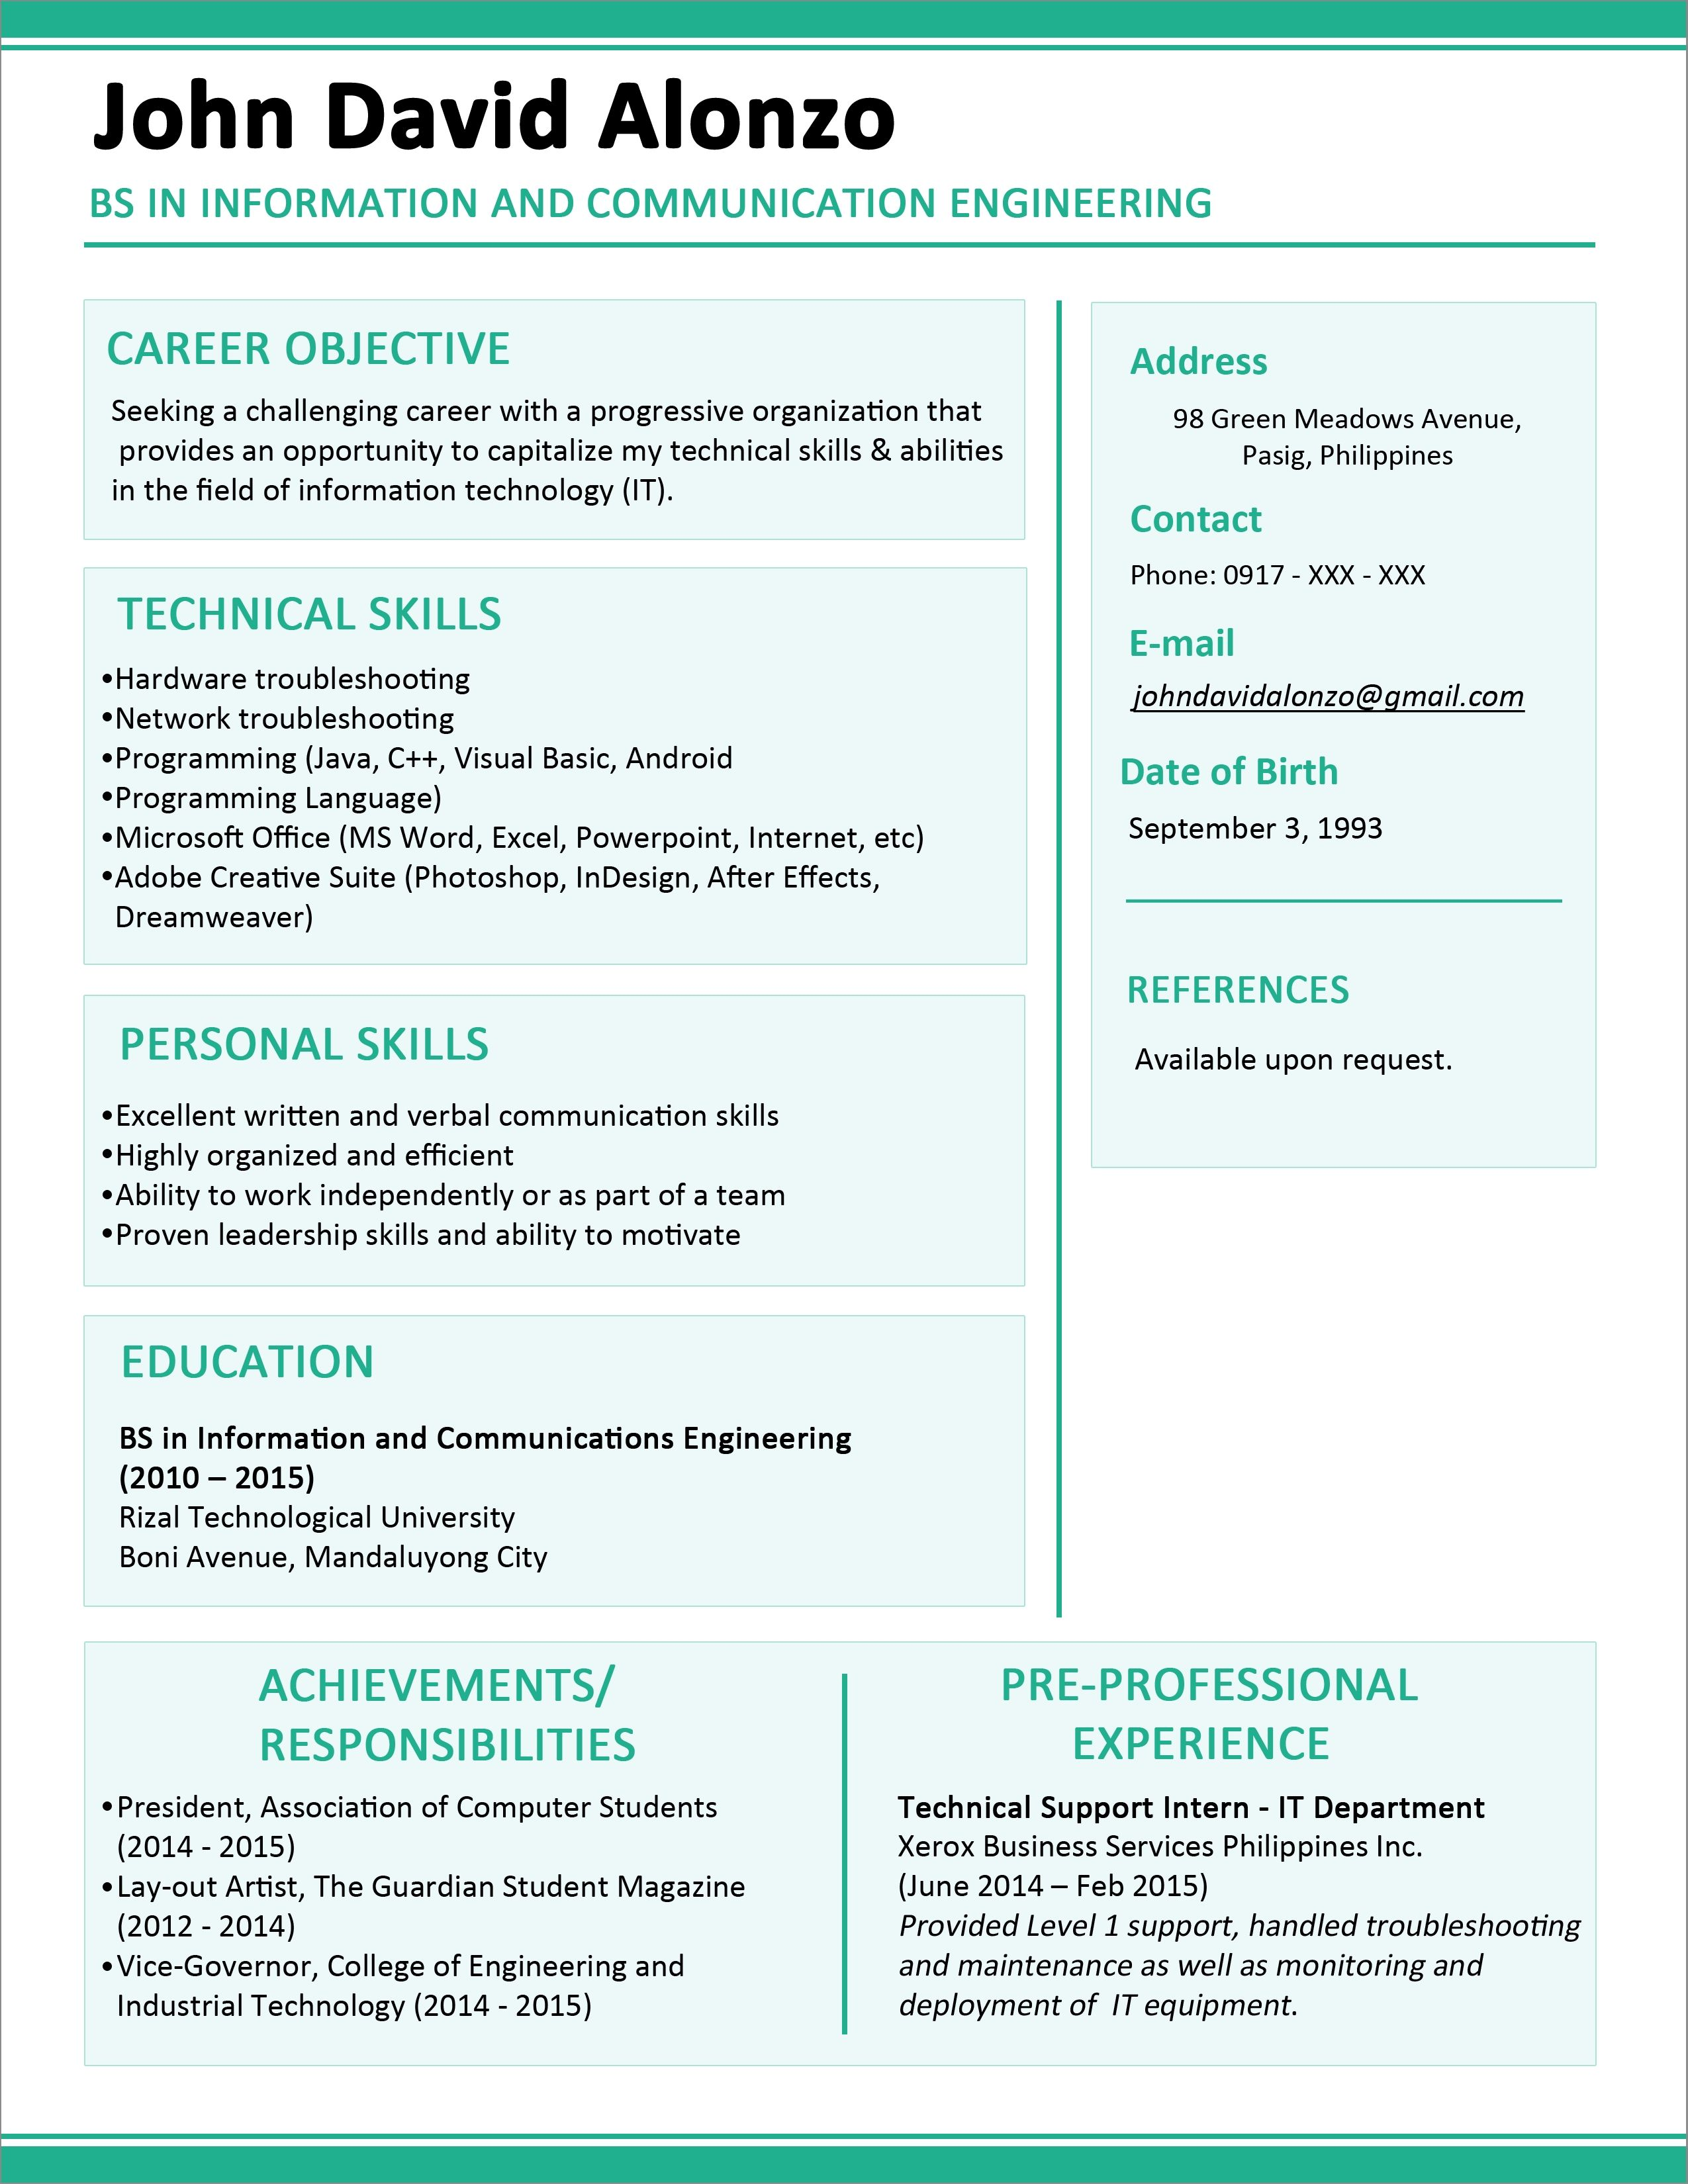 How To Make A Good Resume For Fresh Graduates Cover Letter